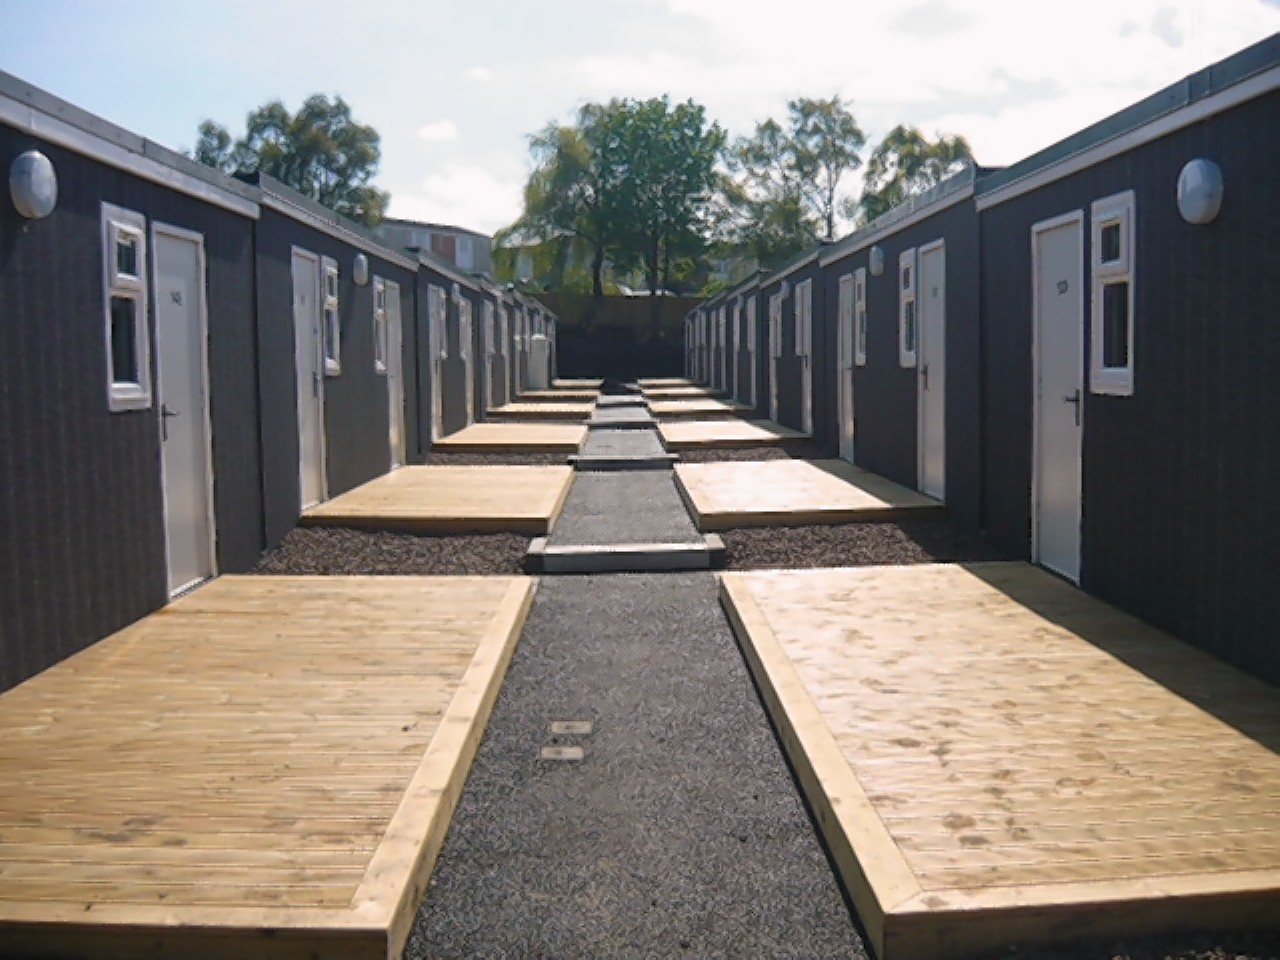 Artist impression of how the Digs2Go accommodation is expected to look